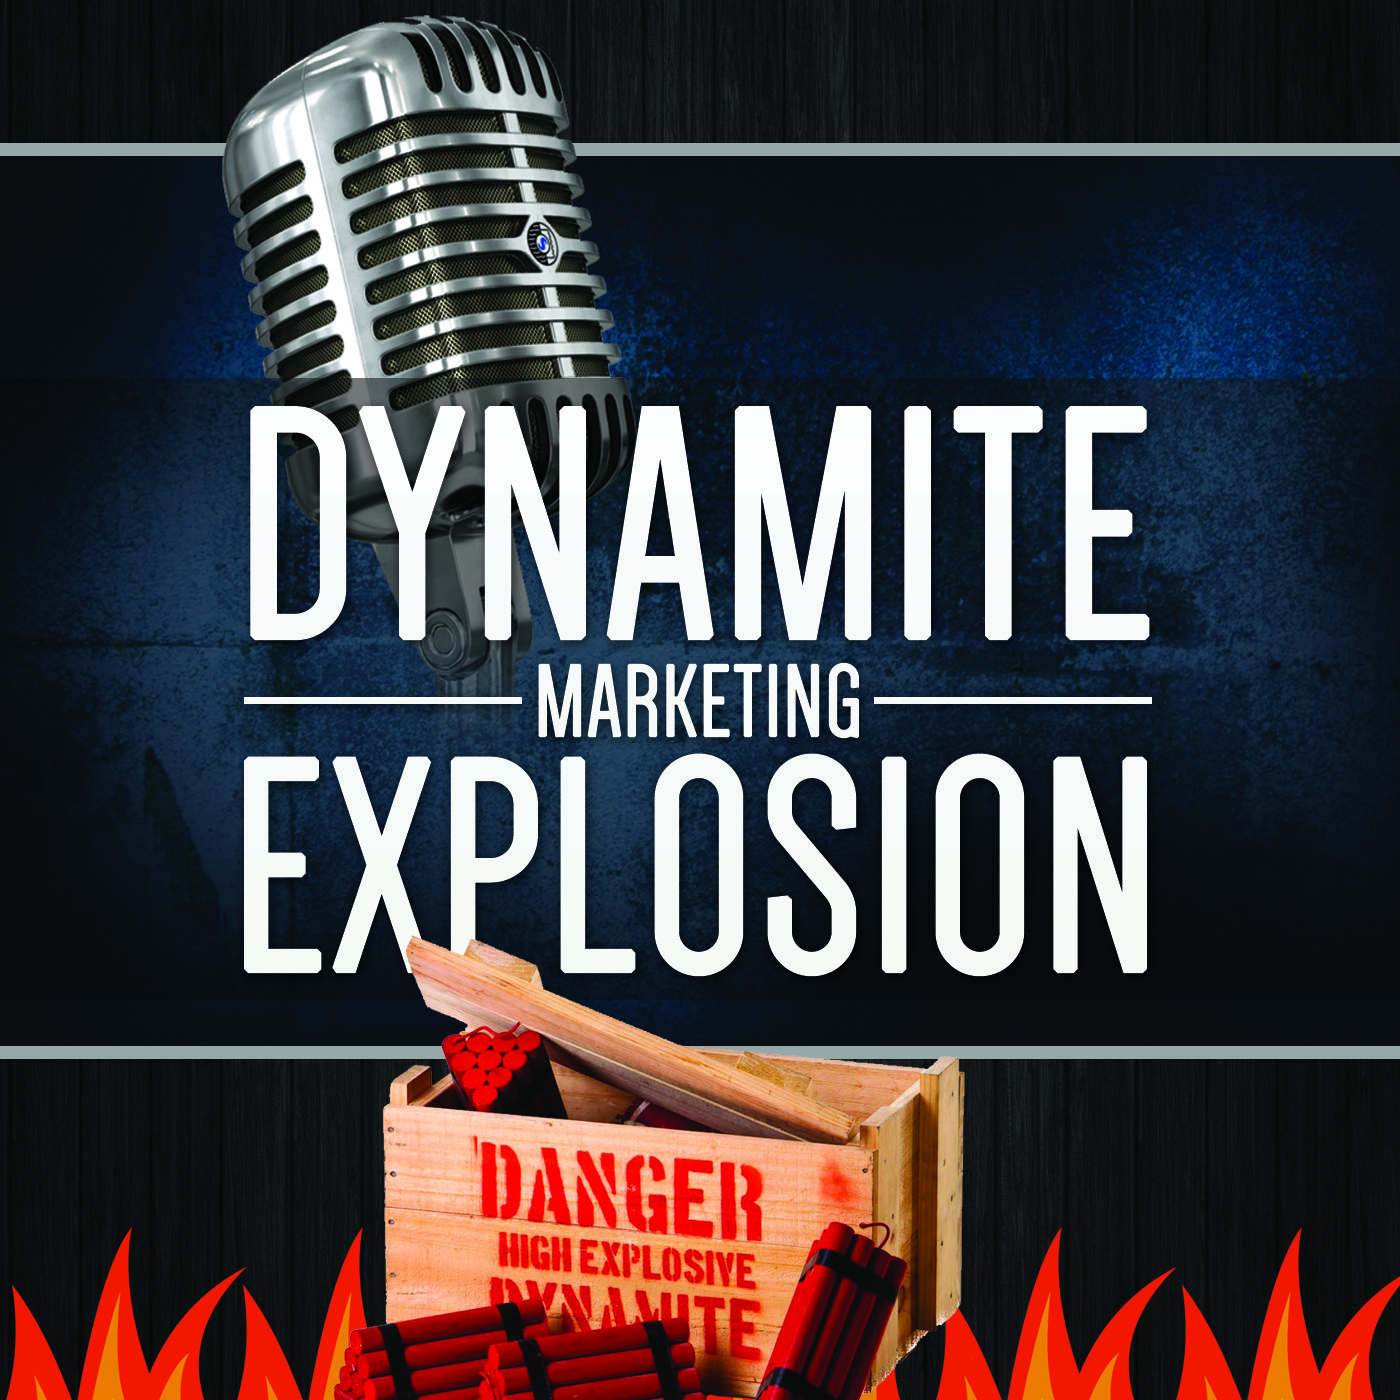 Dynamite Marketing Explosion Podcast - Bringing Quality Advice To Early Stage marketers Who Want To Build An Email List Of Buyers